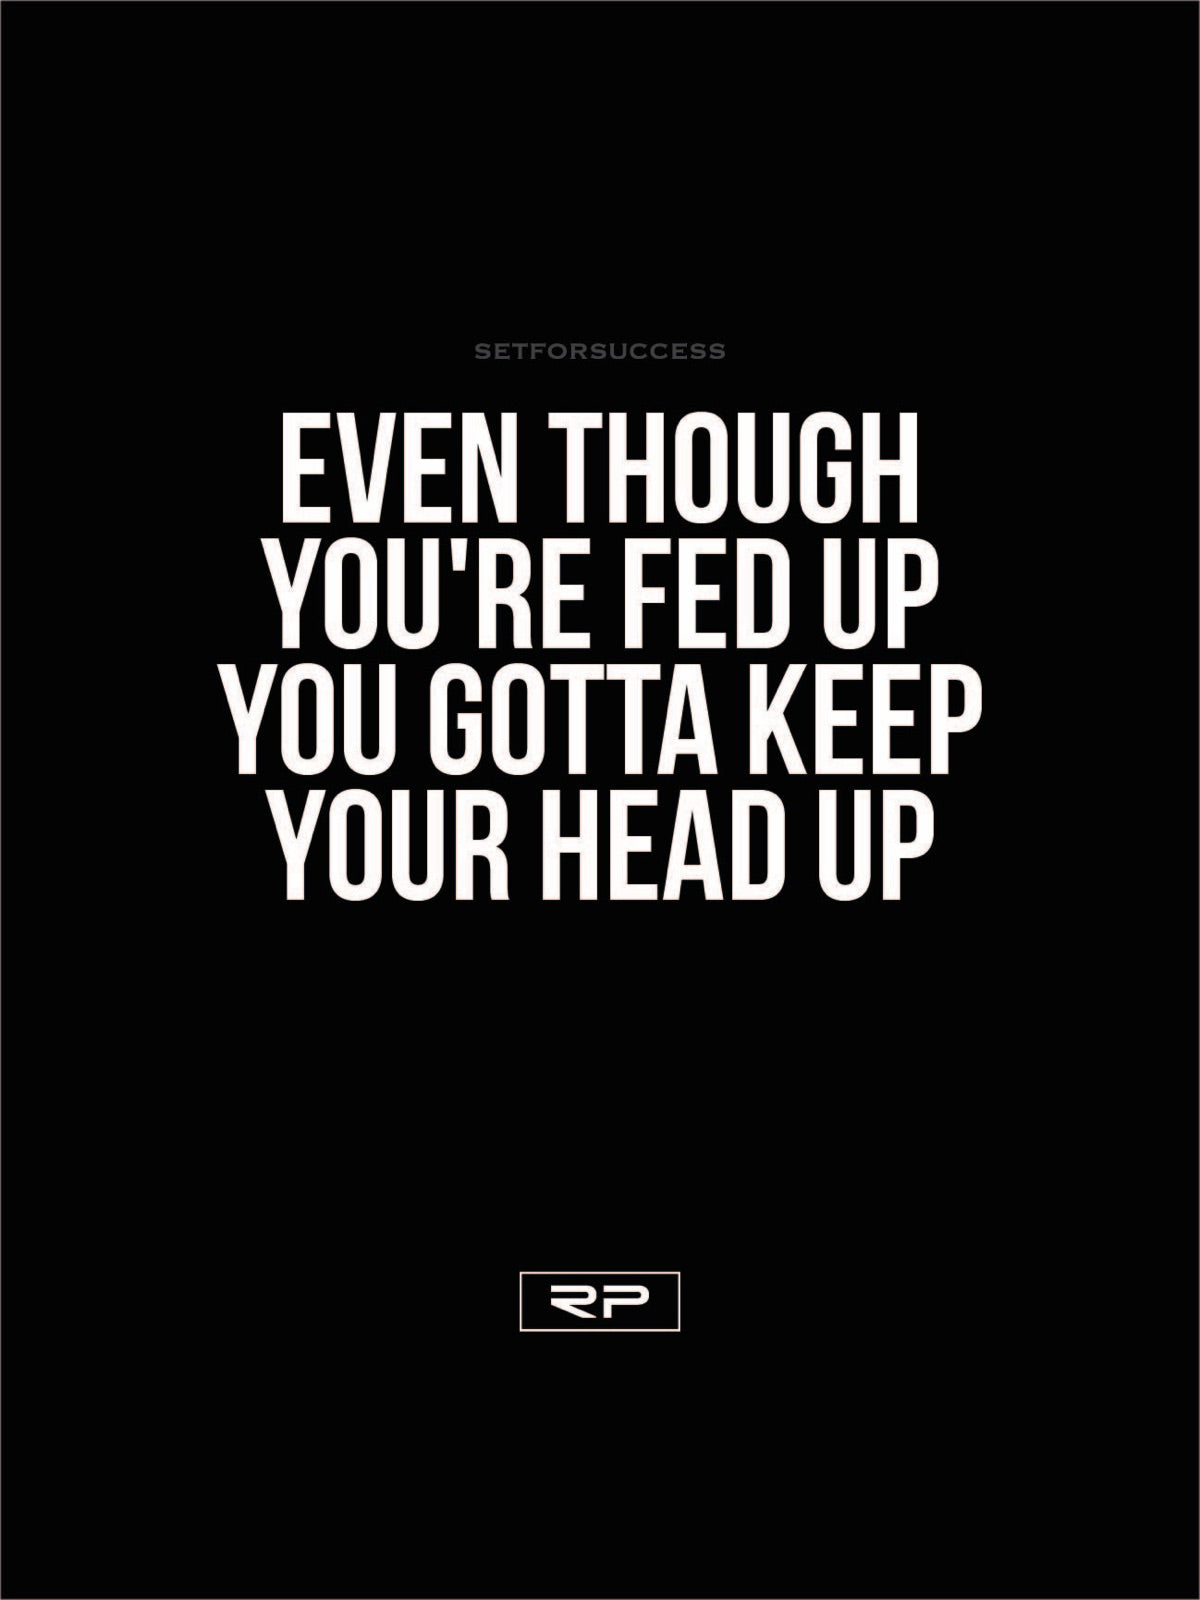 Keep Your Head Up 18x24 Poster Randall Pich